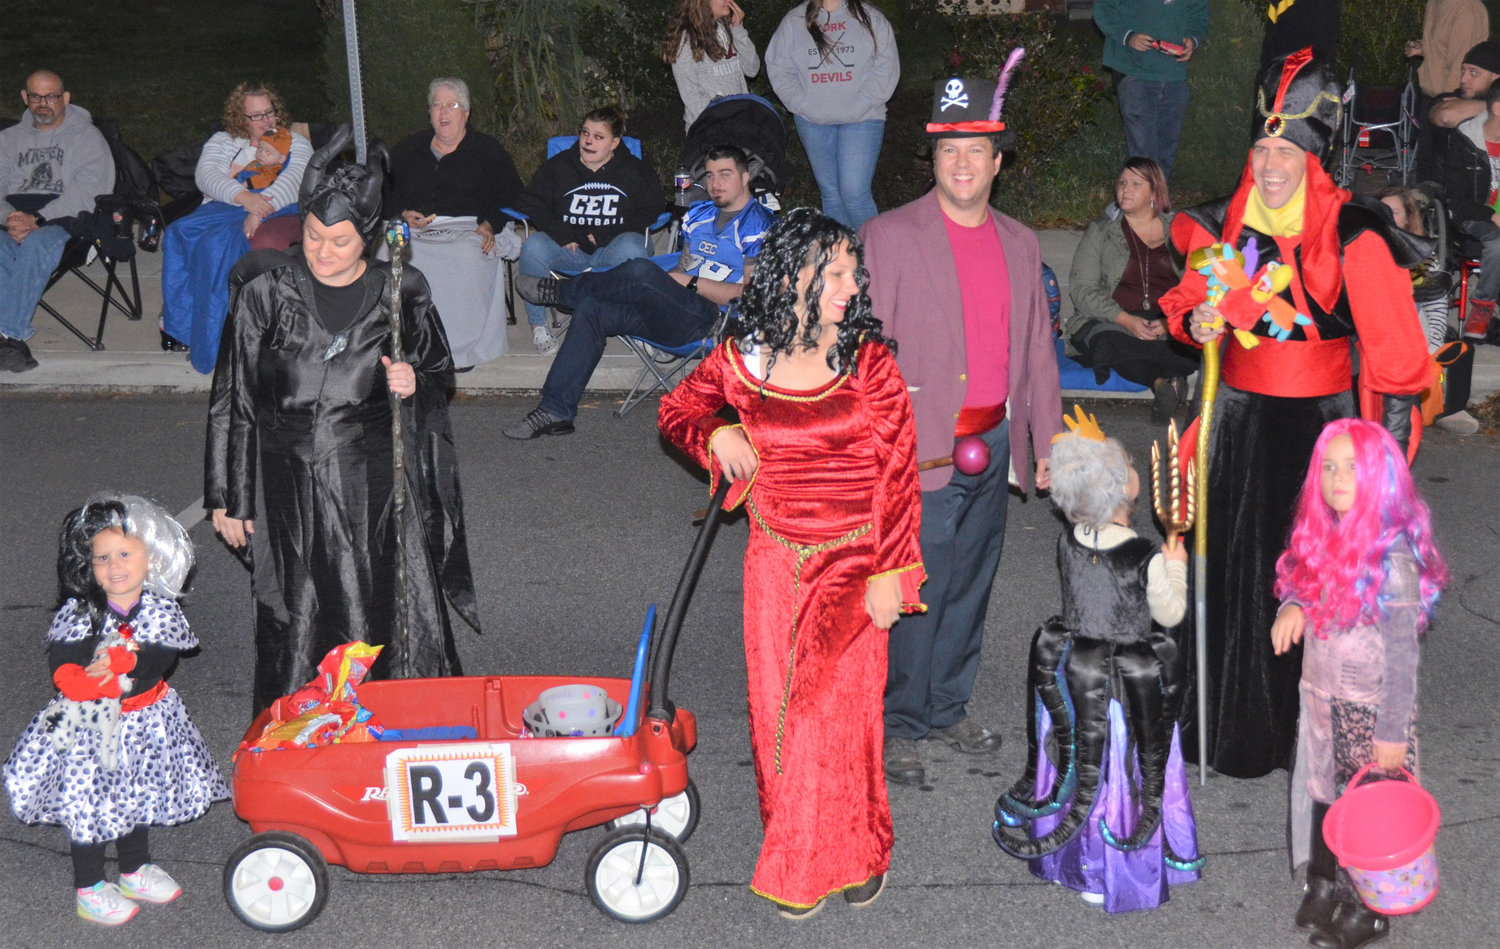 Disney Villains took first place in the Original Group category in the 66th Kiwanis Club of Middletown's 2019 Halloween Parade.